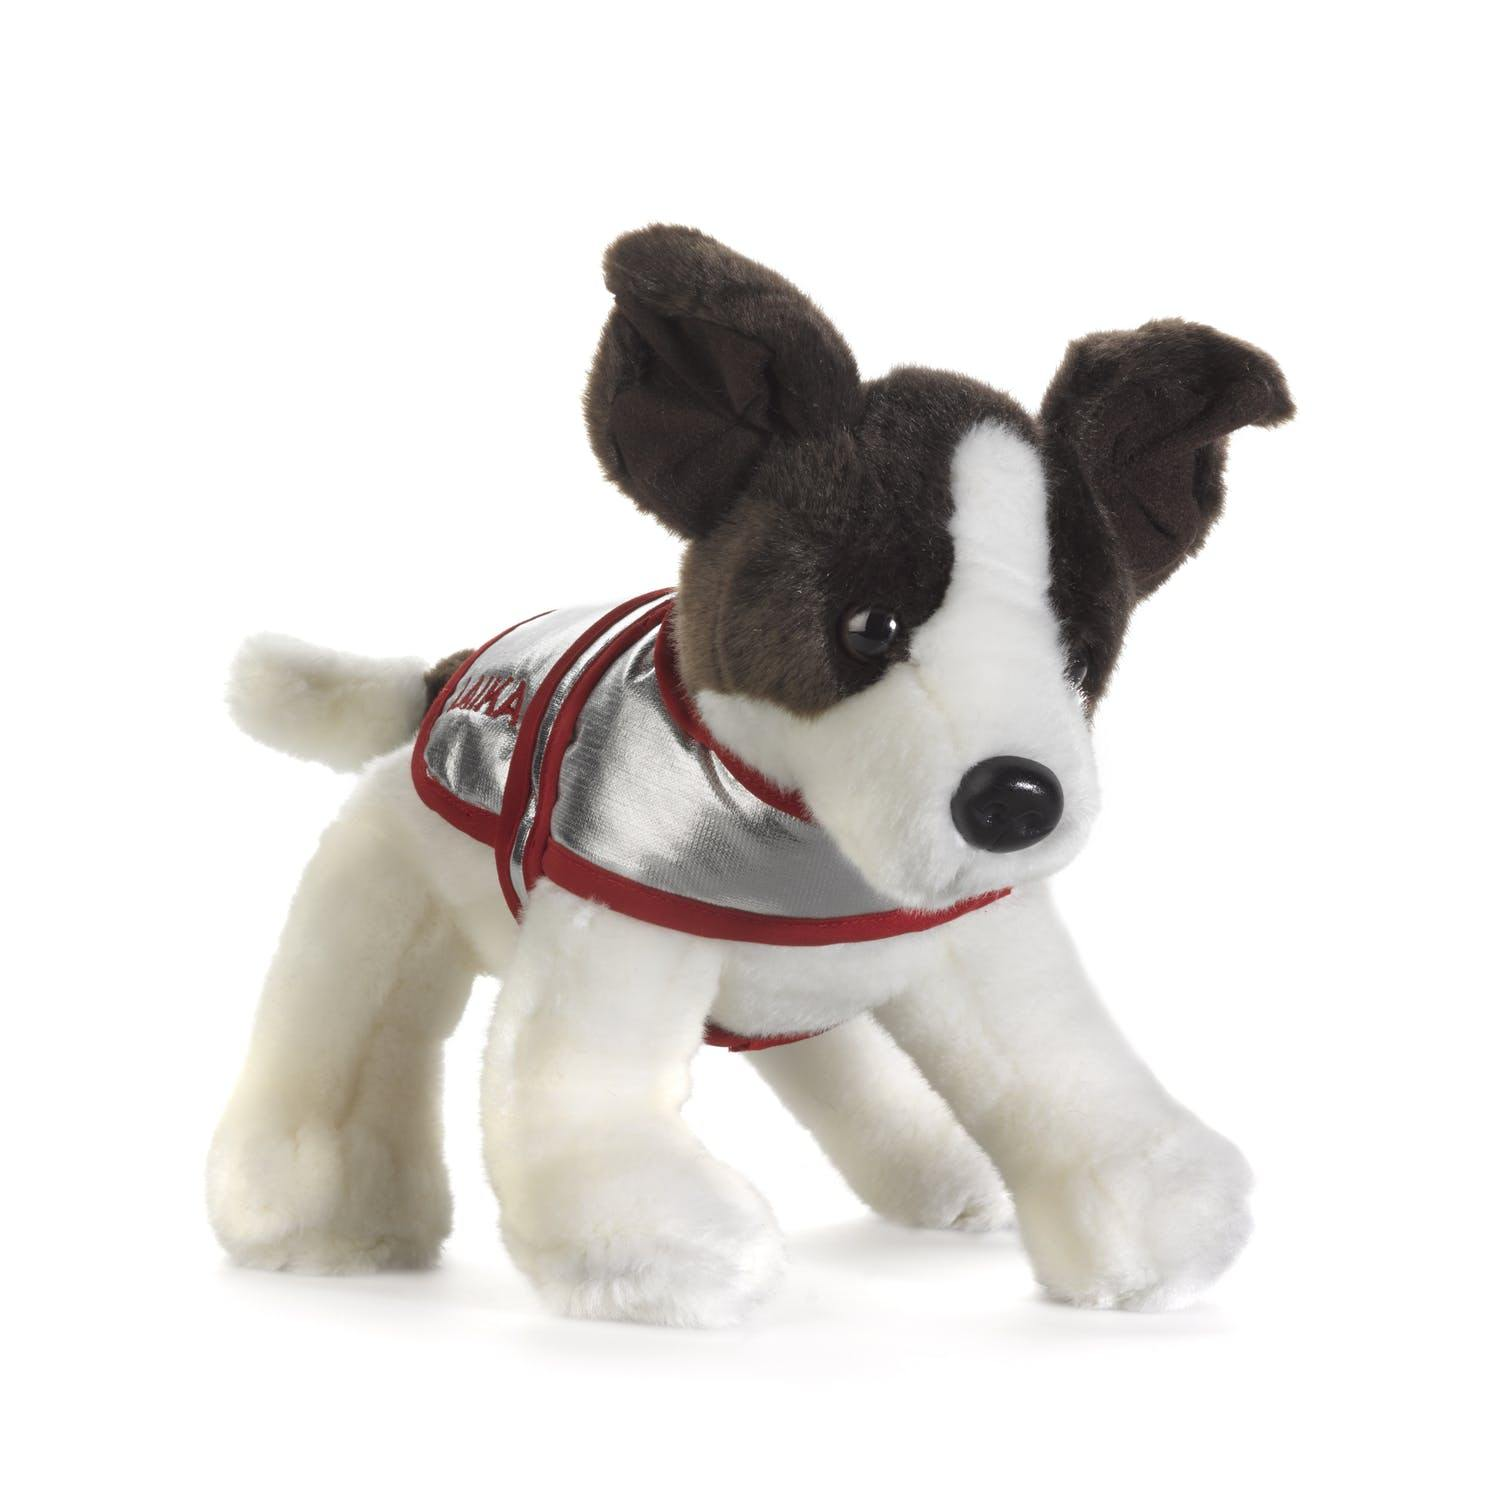 Laika Cuddly Toy Dog-2